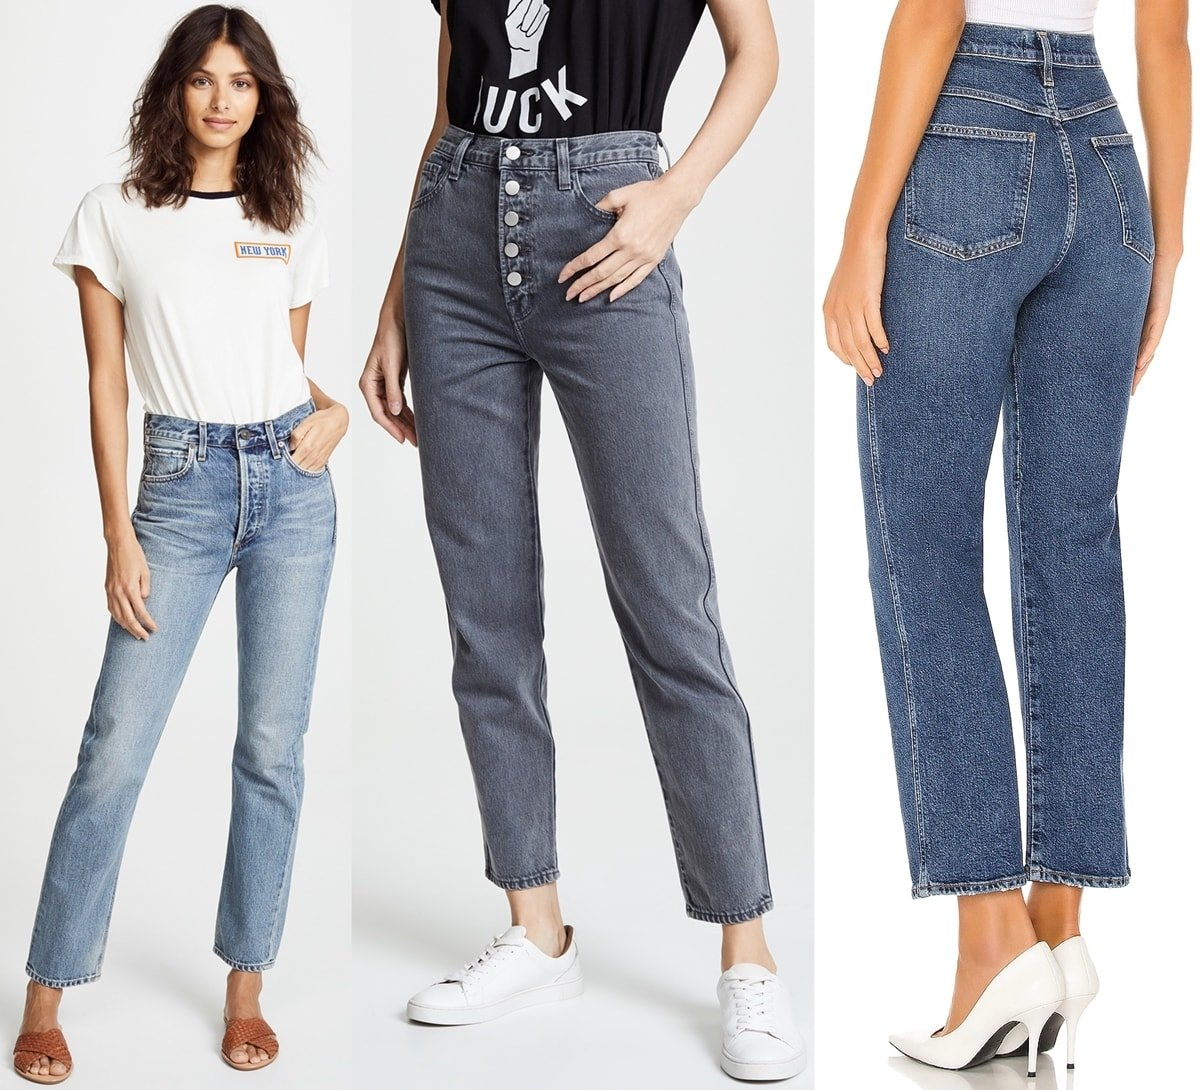 Straight-leg jeans from Citizens of Humanity, J Brand, and Agolde